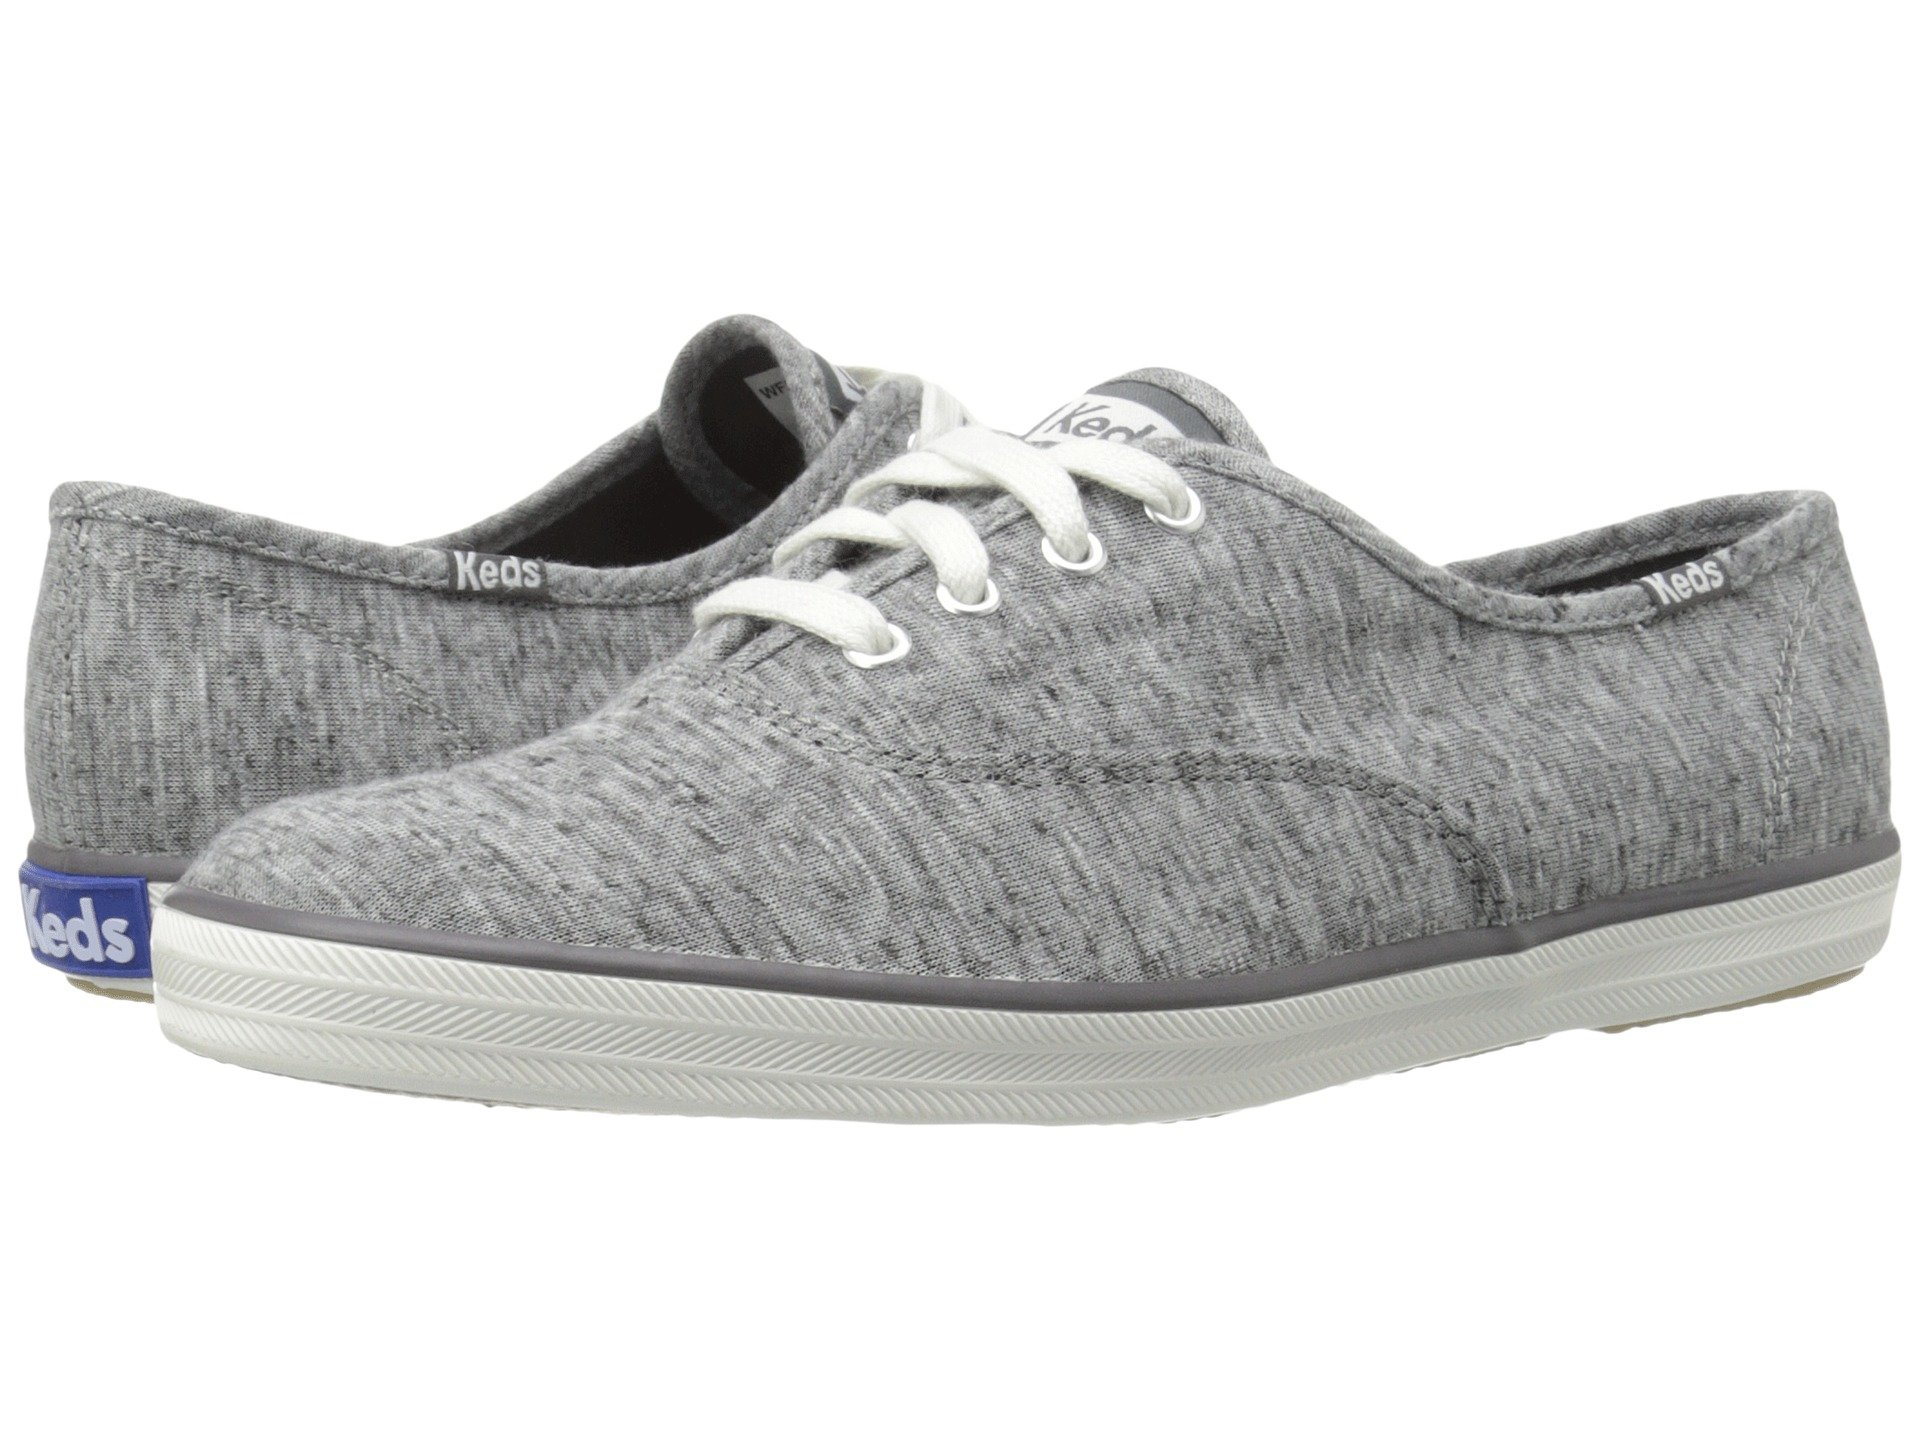 8441bdb70b0 Keds Champion Jersey In Charcoal